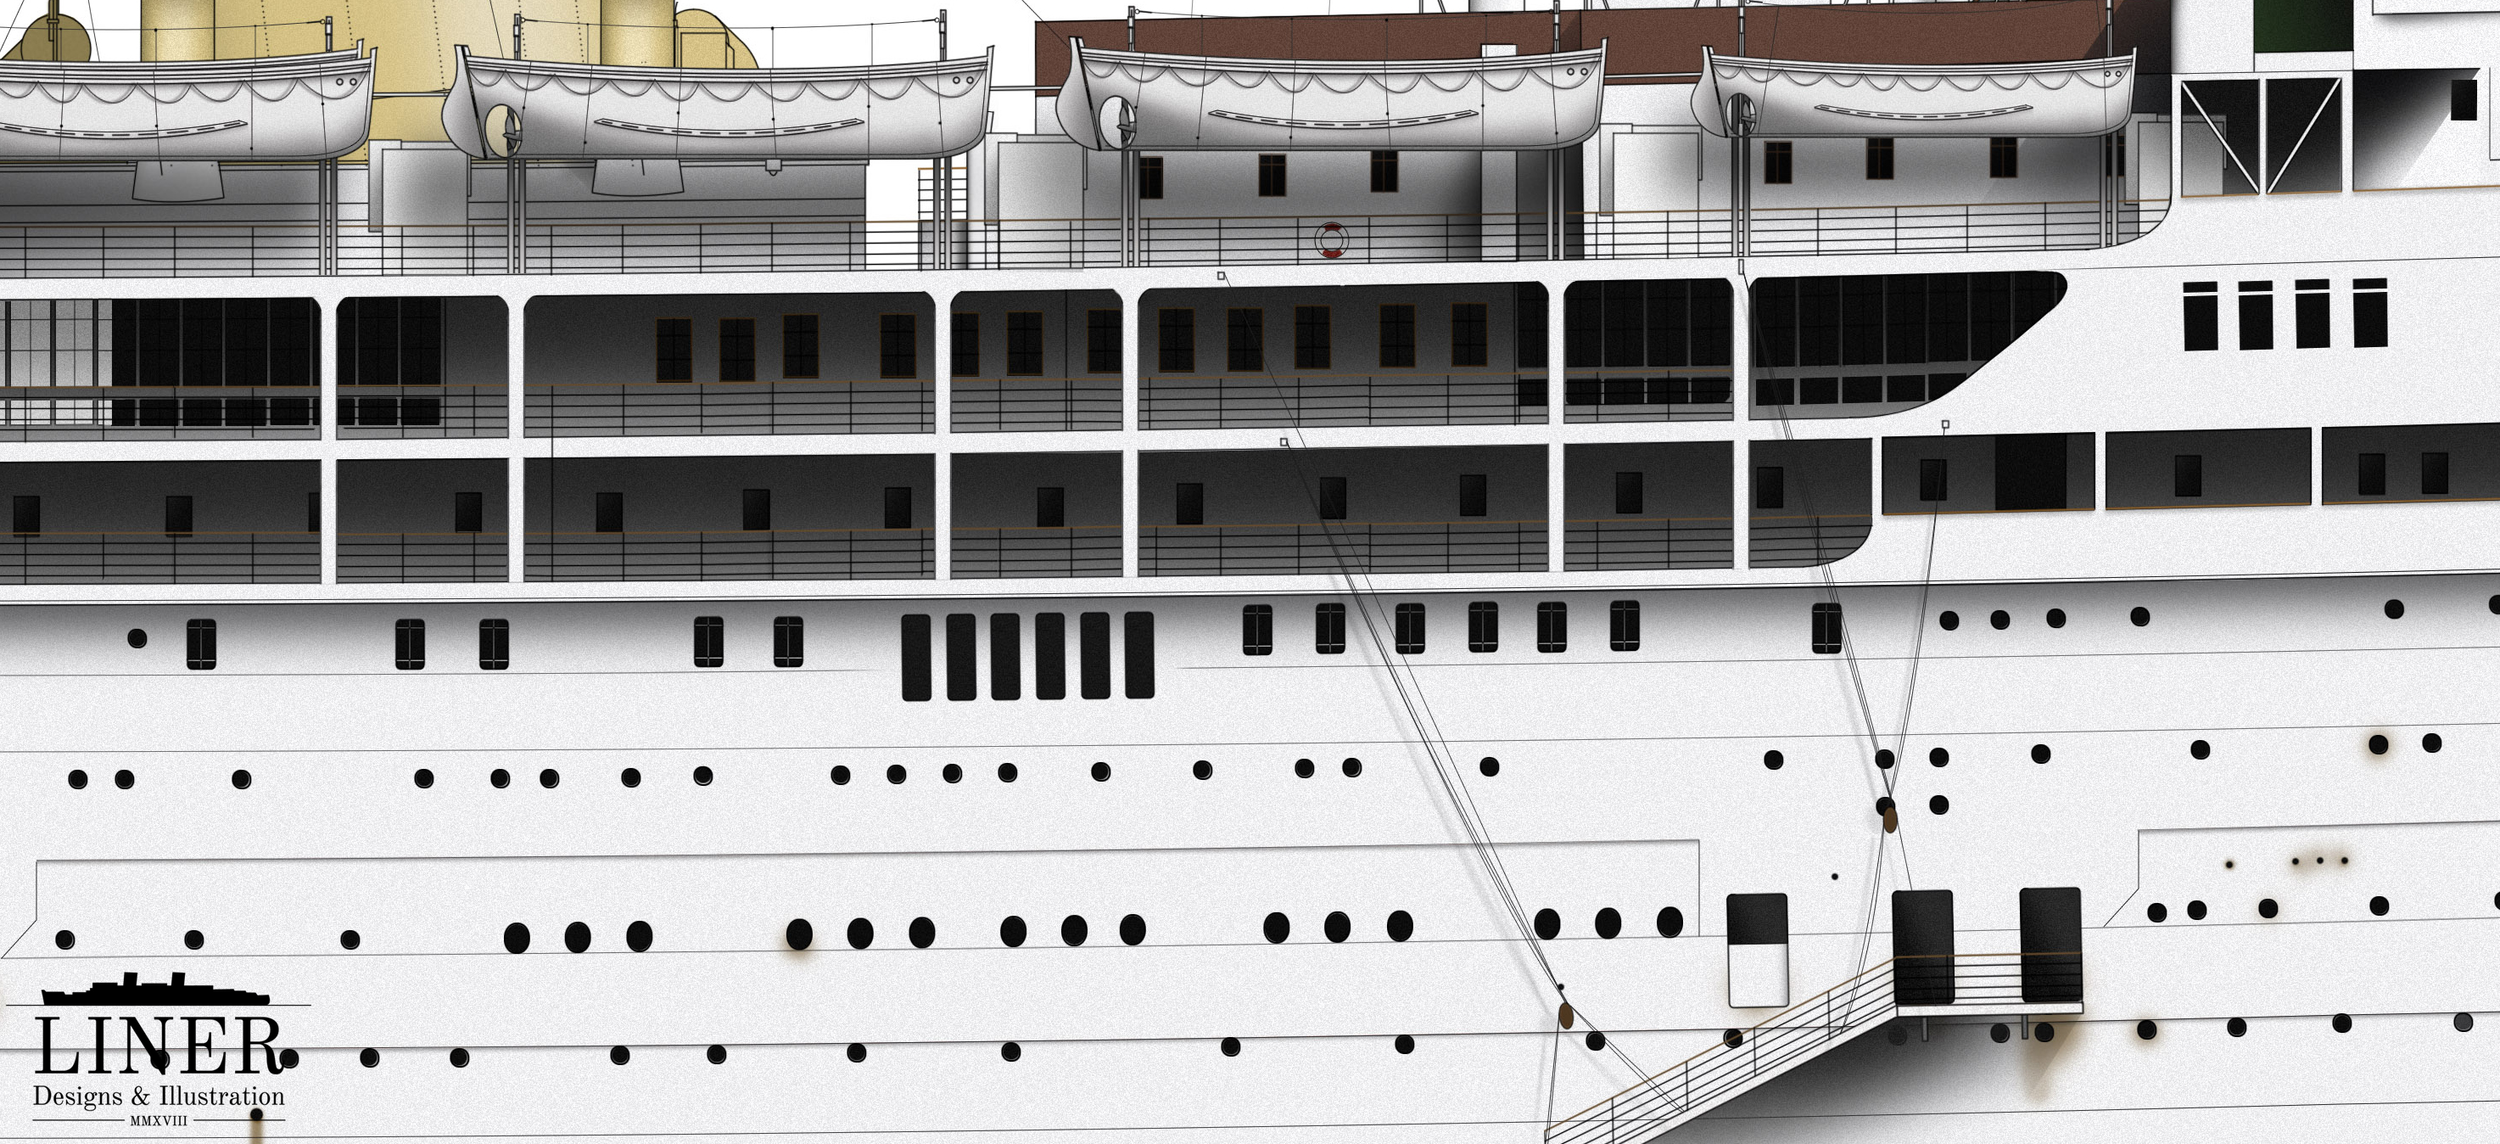 A section of Stratheden's hull showing window arrangements and promenades. Note the gangway doors at the lower right which could be opened fully or halfway to allow for ventilation while cruising in the tropics.